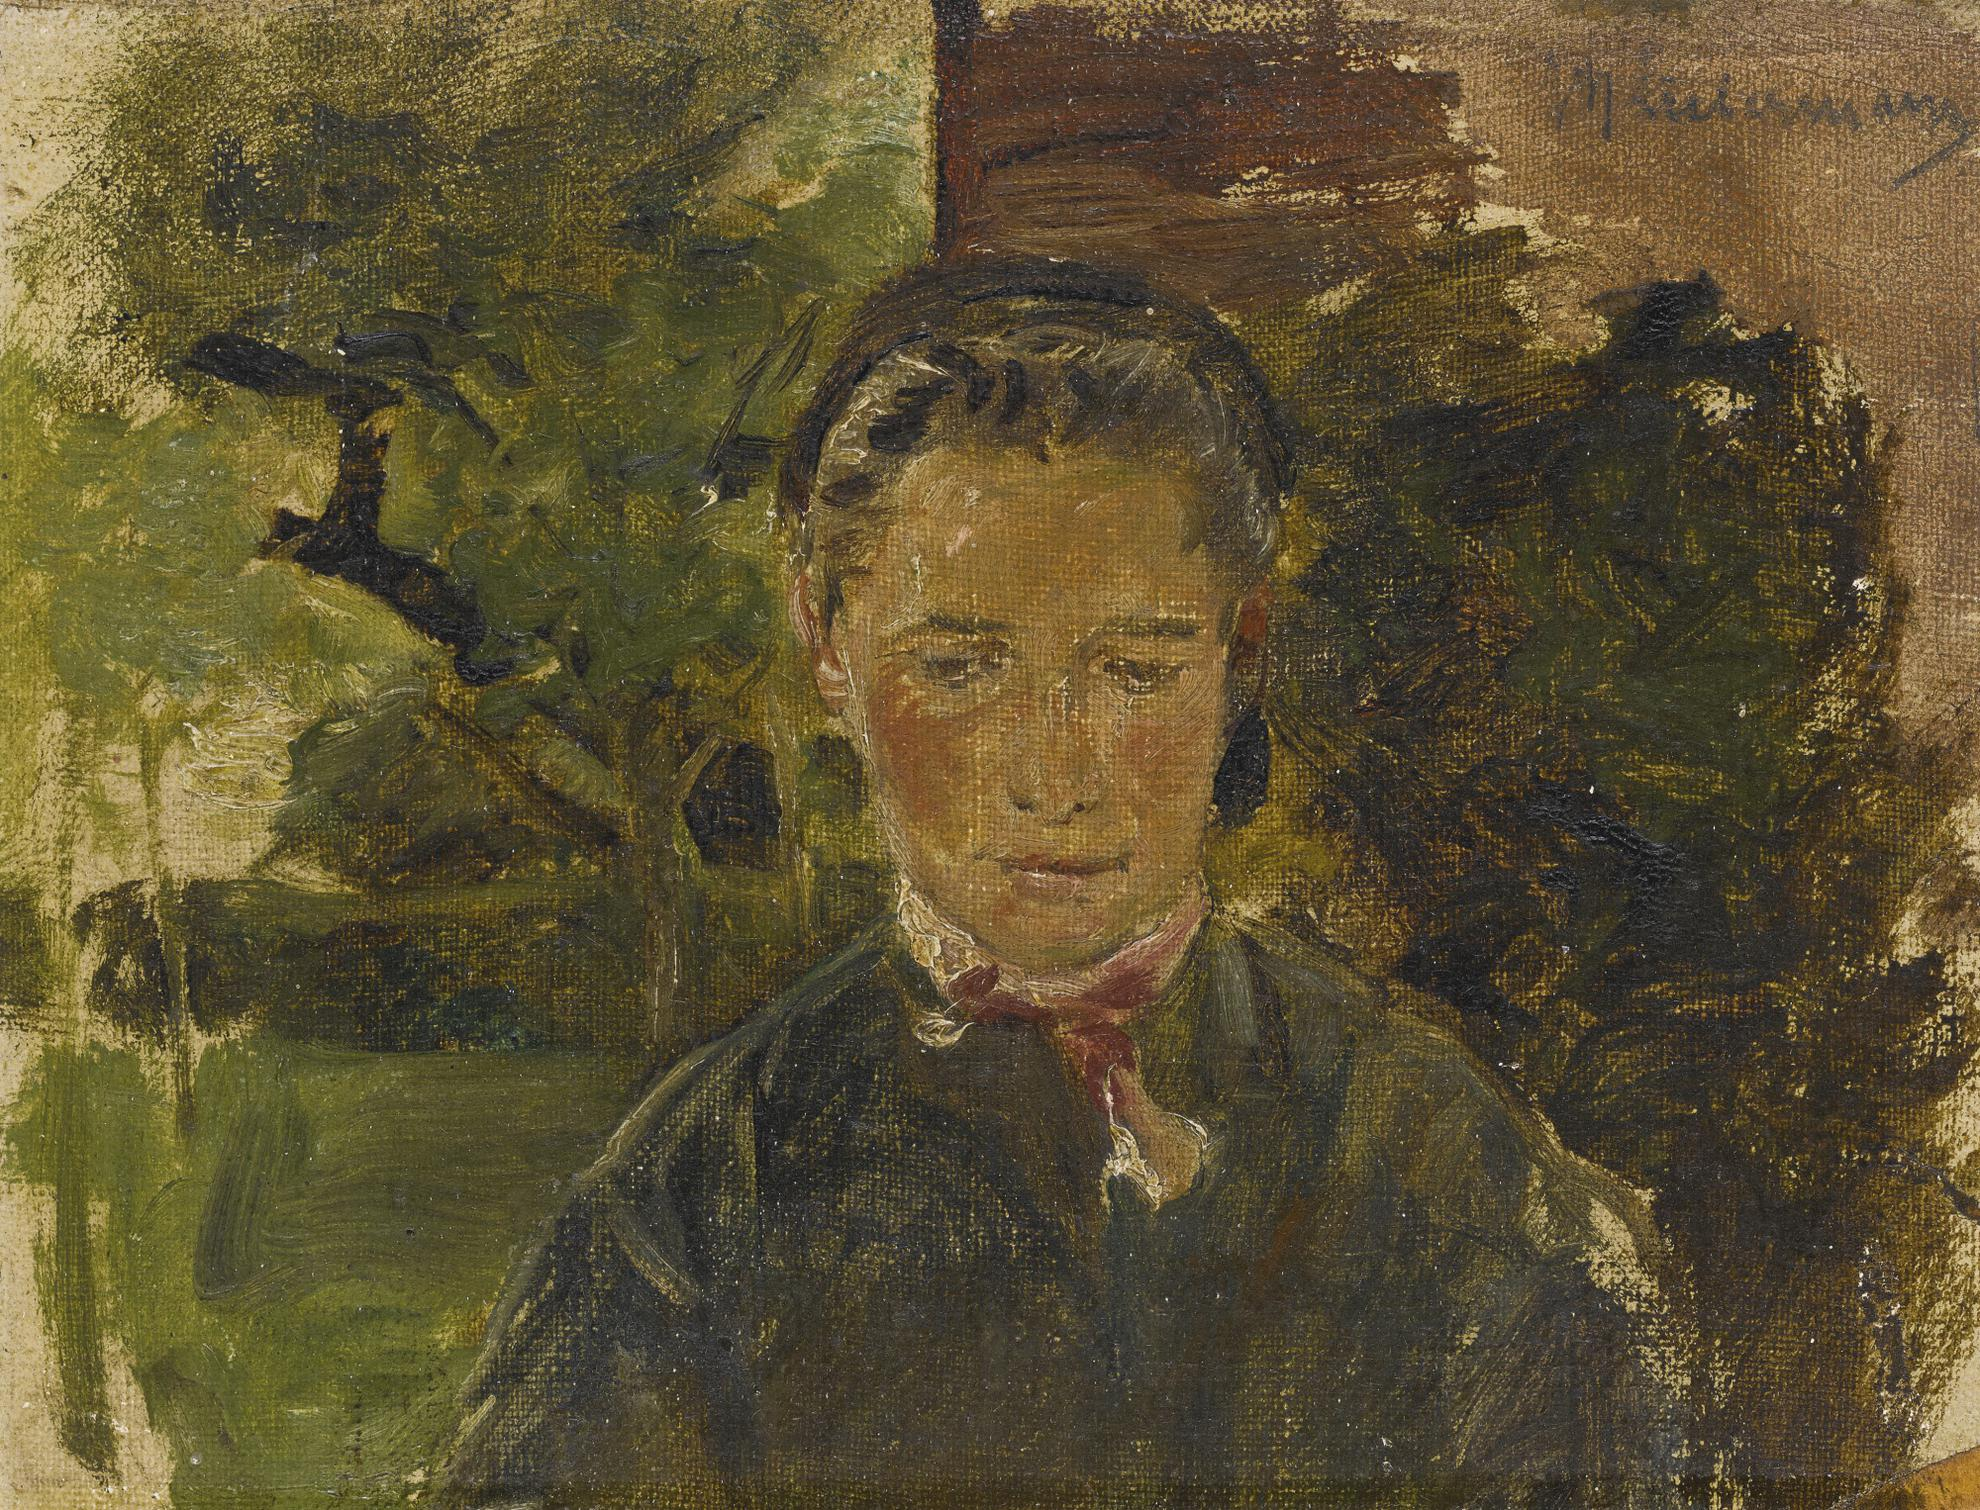 Max Liebermann-Bildnis Einer Jungen Frau Aus Laren, Halbfigur En Face (Portrait Of A Young Woman From The Country, Half Figure En Face)-1887